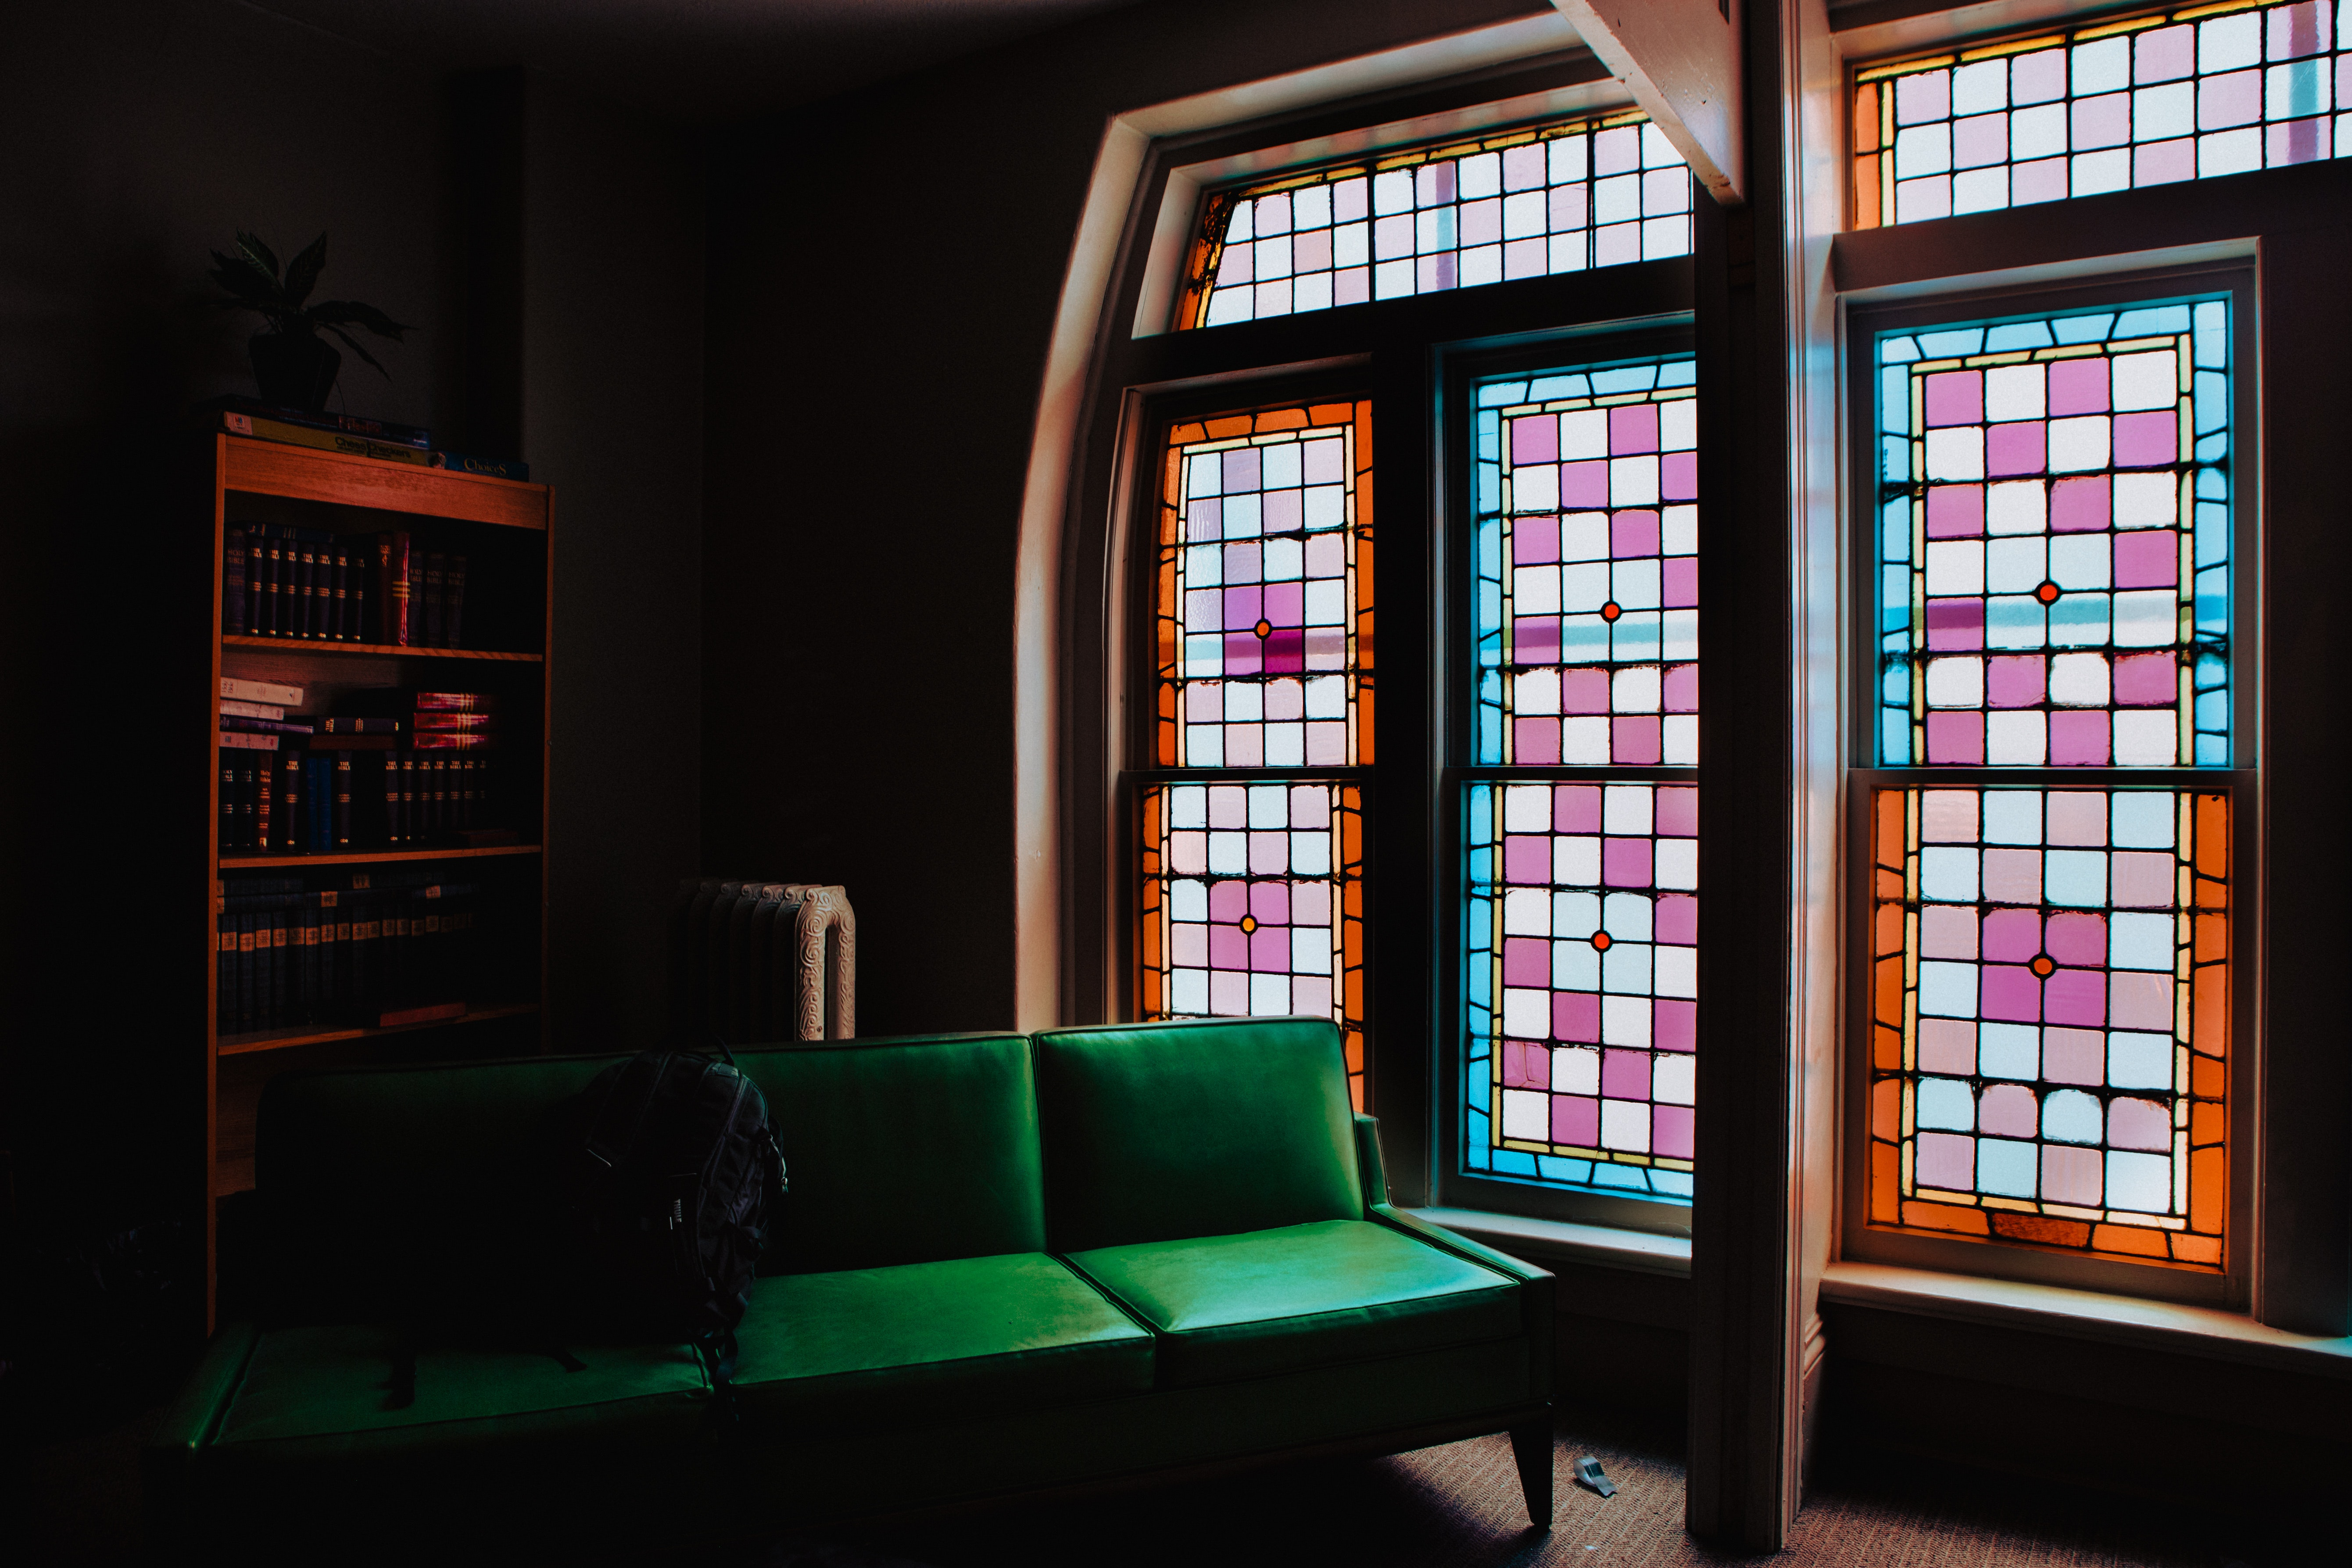 Green Leather Couch Beside Of Stained Glass Window 183 Free Stock Photo